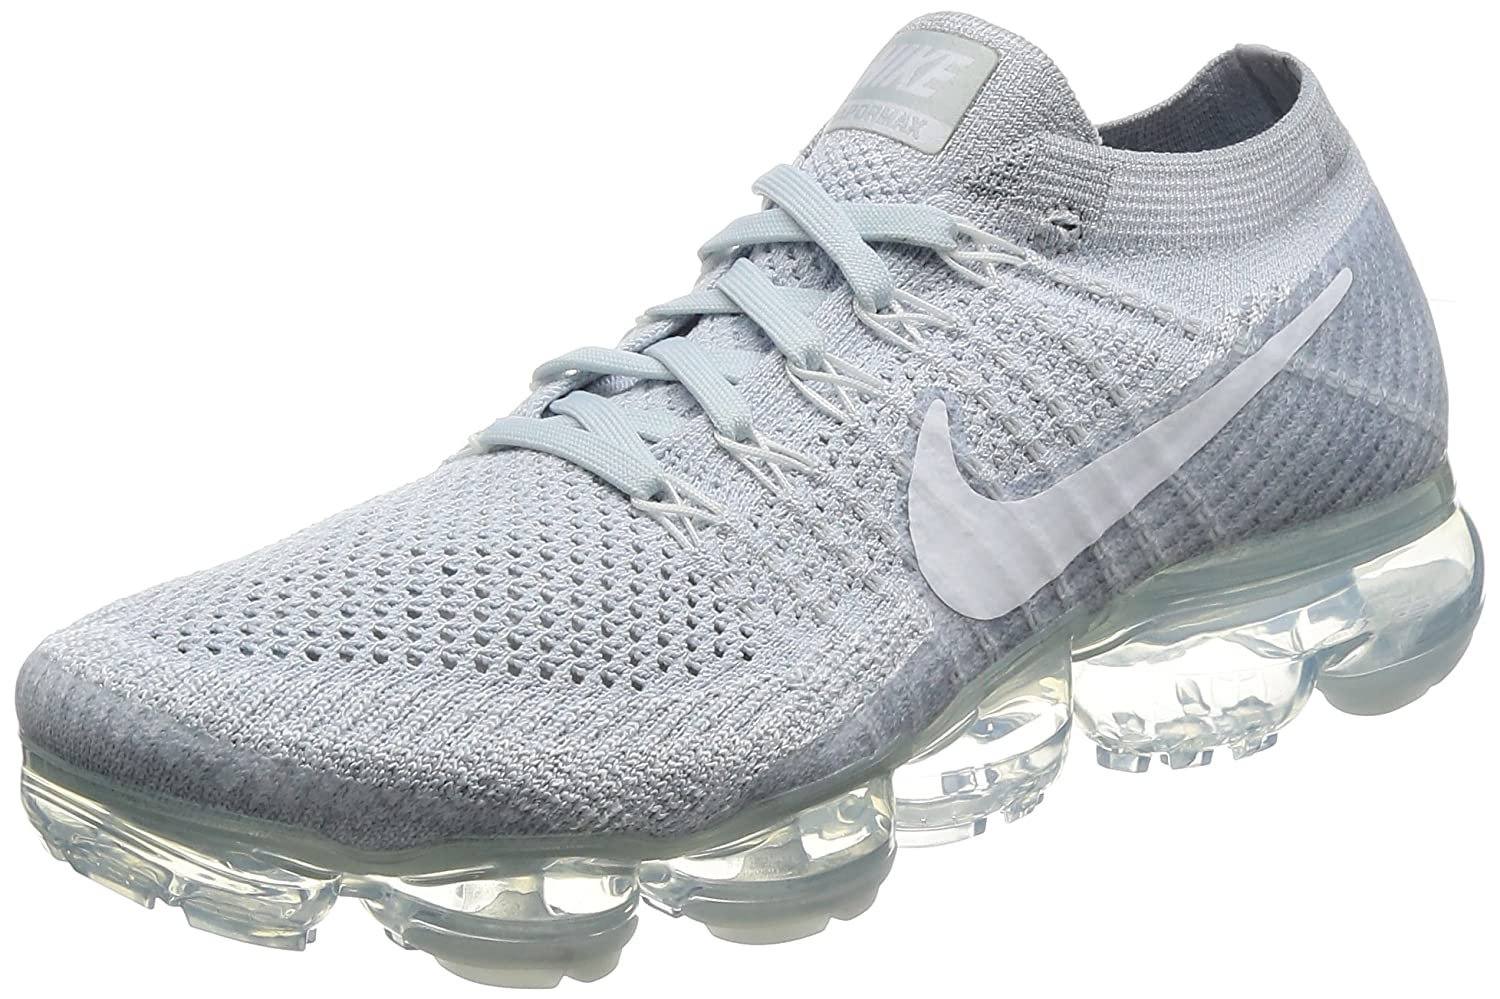 best cheap 096b2 199c8 Amazon.com   Men s Nike Air Vapormax Flyknit Running Shoe   Fashion Sneakers